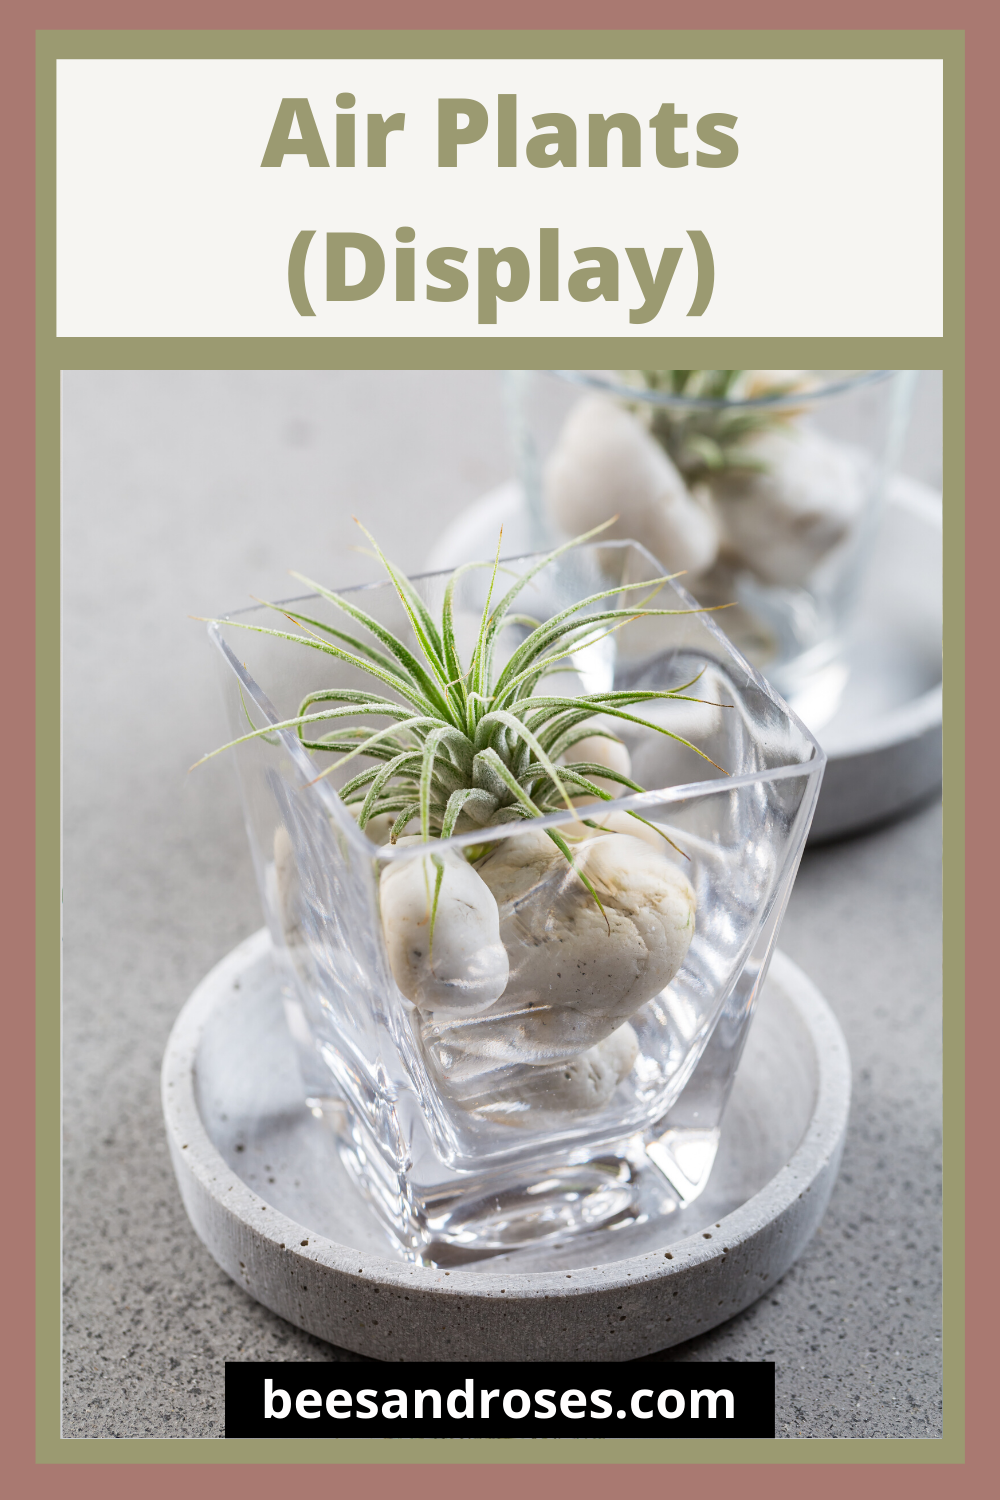 Air plants make great houseplants for those homeowners who tend to kill everything they look at. Why? Well, these plants require little maintenance and no soil. You read that right, no soil. Keep reading to learn more about the amazing houseplant. #airplants #houseplantcare #beesandrosesblog